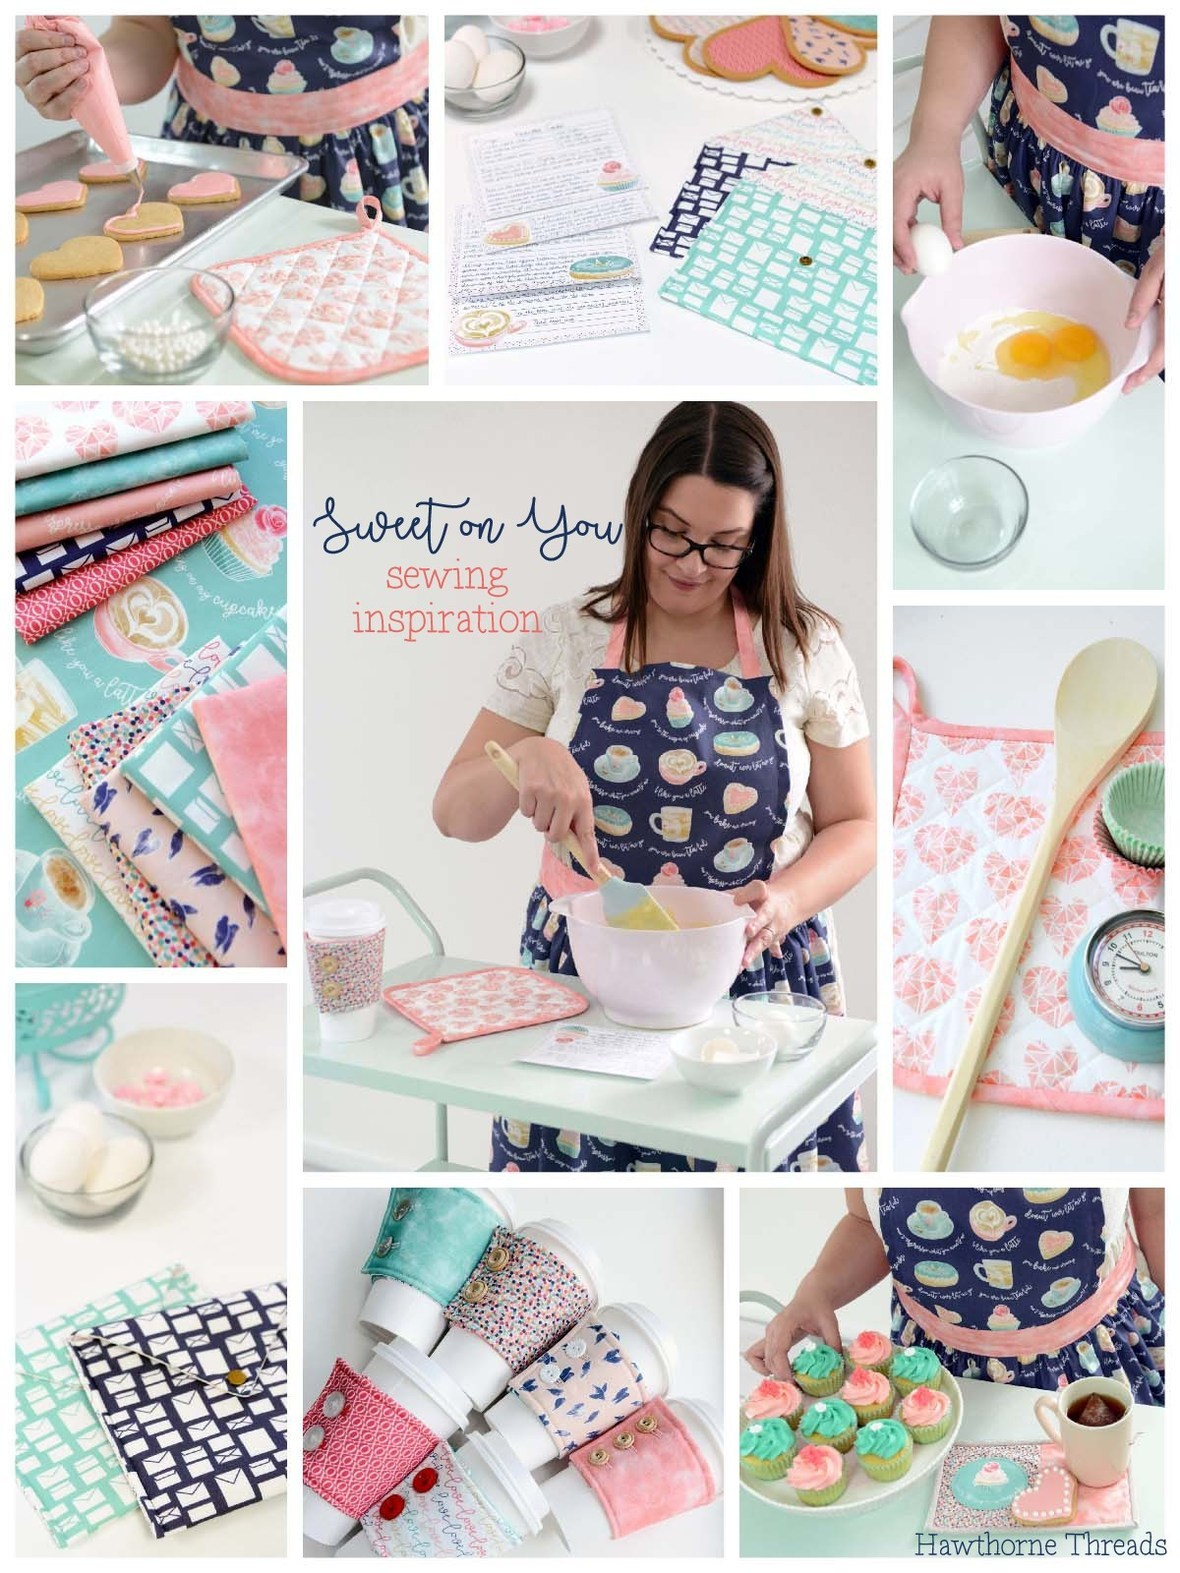 Sweet On You Fabric Sewing Inspiration c